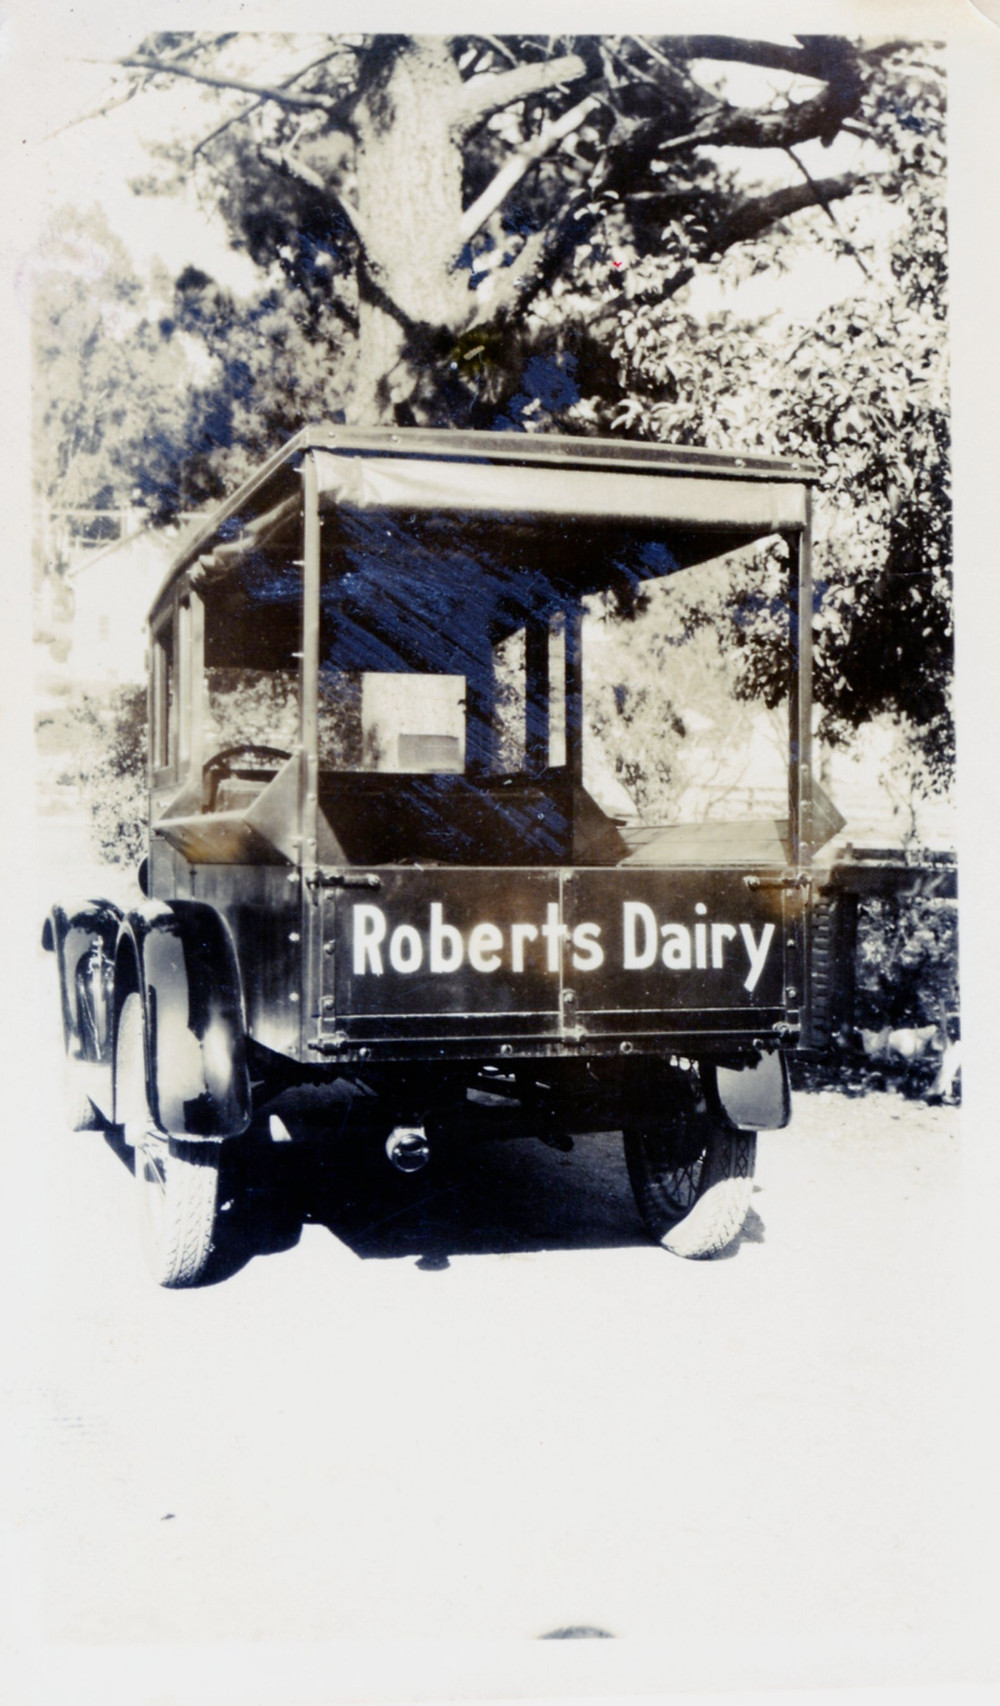 Roberts Dairy delivery truck. (Photo appears older than 1938.)4